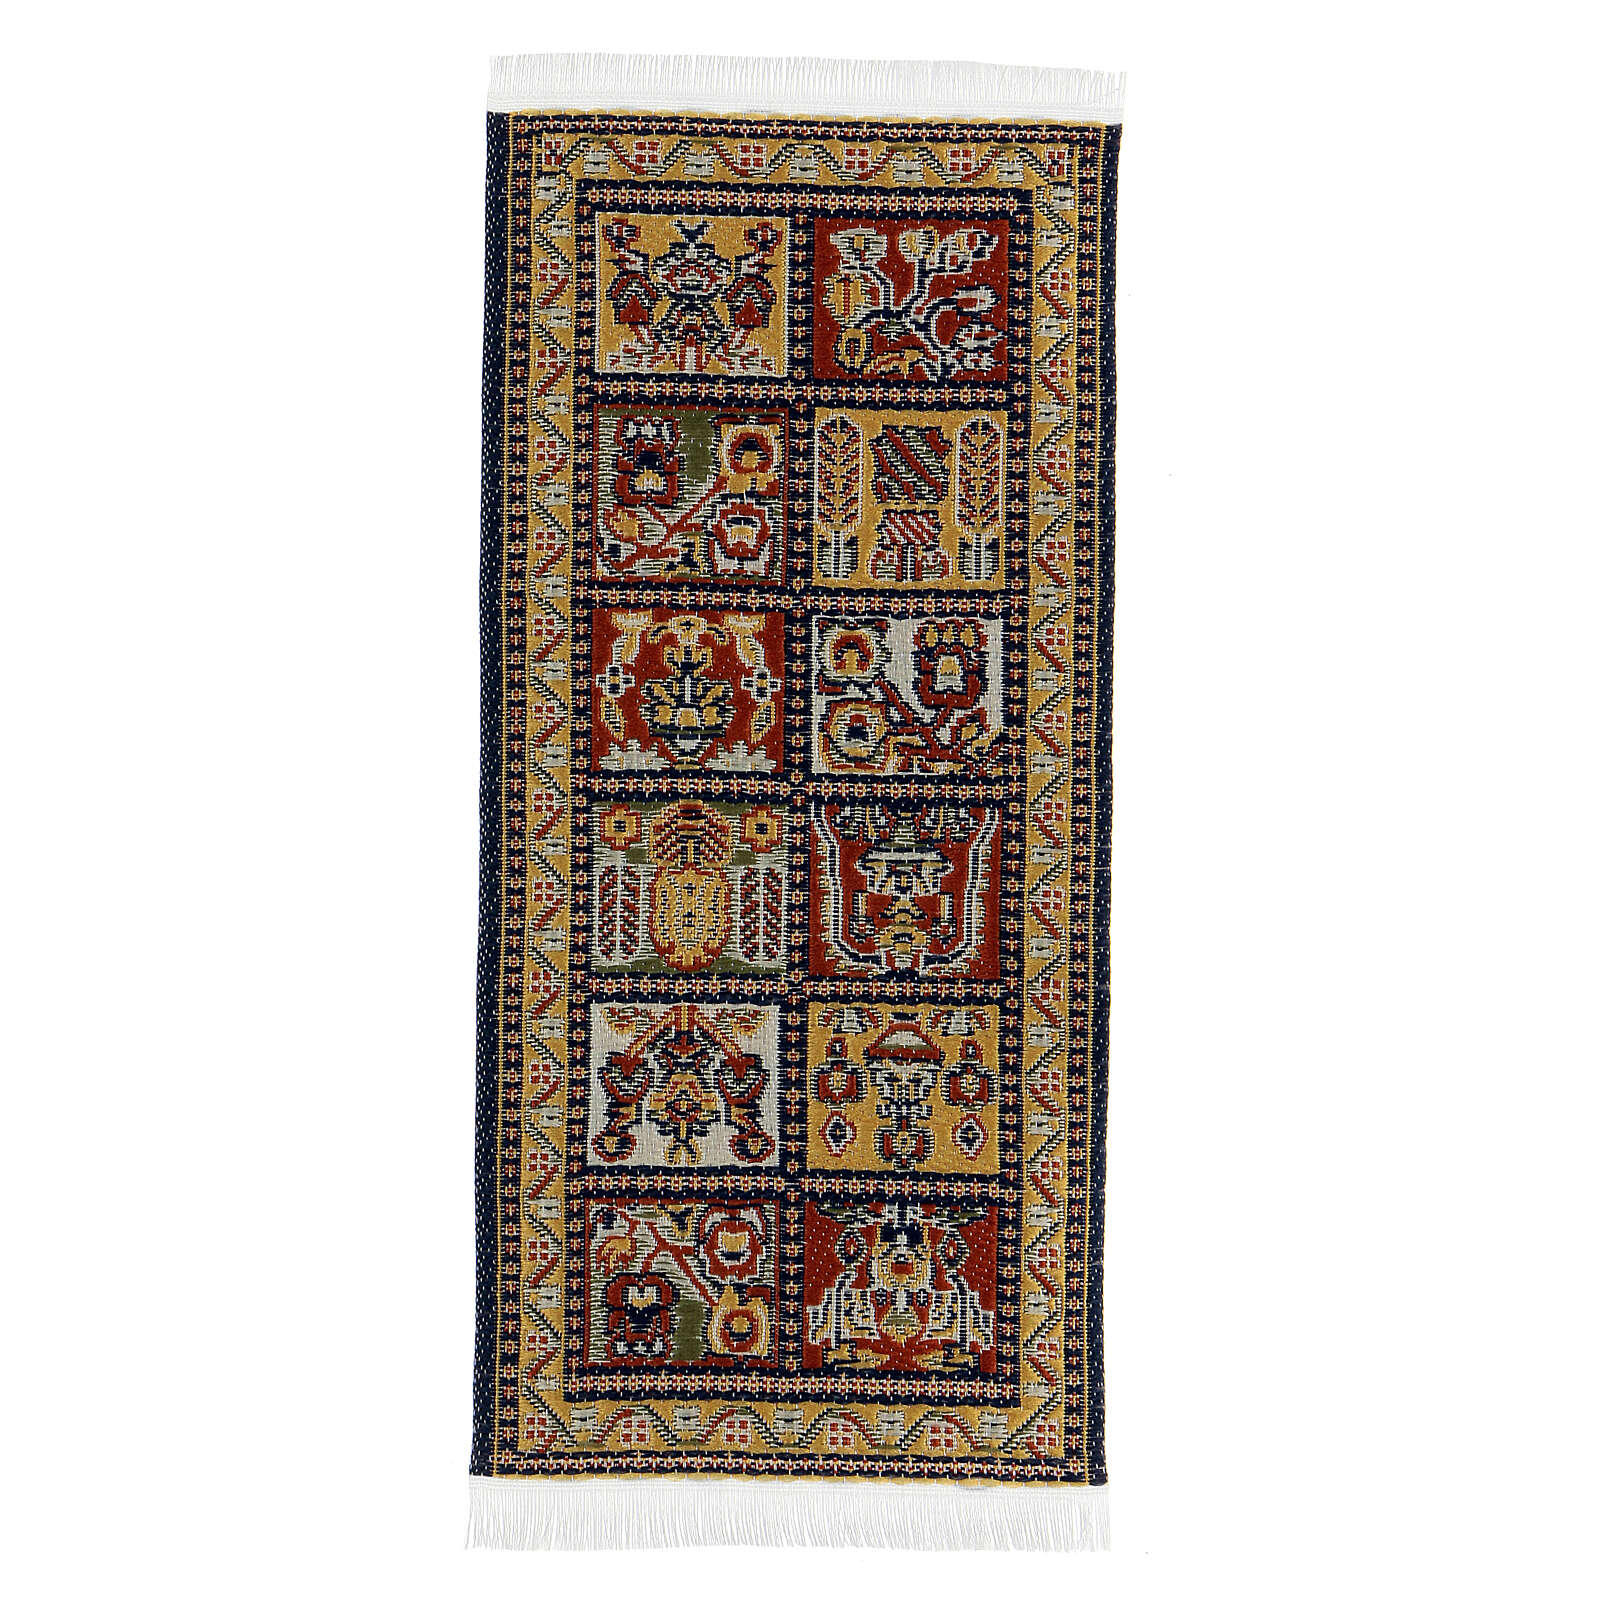 Decorated carpet 13x6 cm for Nativity Scene with 14-20 cm figurines 4